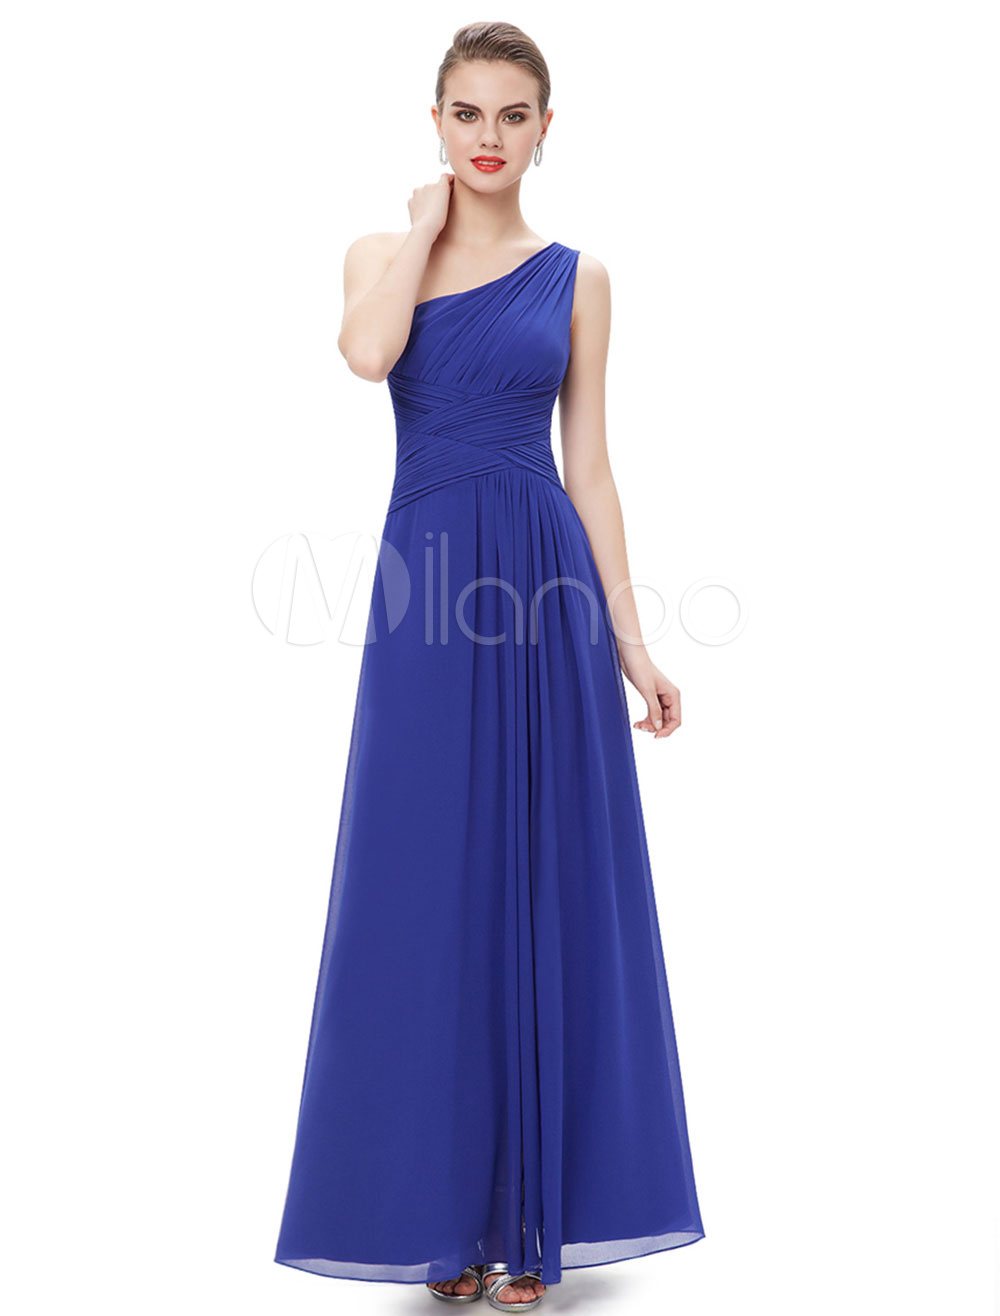 Buy Chiffon Evening Dress Dazzling Blue One Shoulder Mother Of The Bride Dress High Split Pleated Floor Length Wedding Guest Dresses for $101.19 in Milanoo store